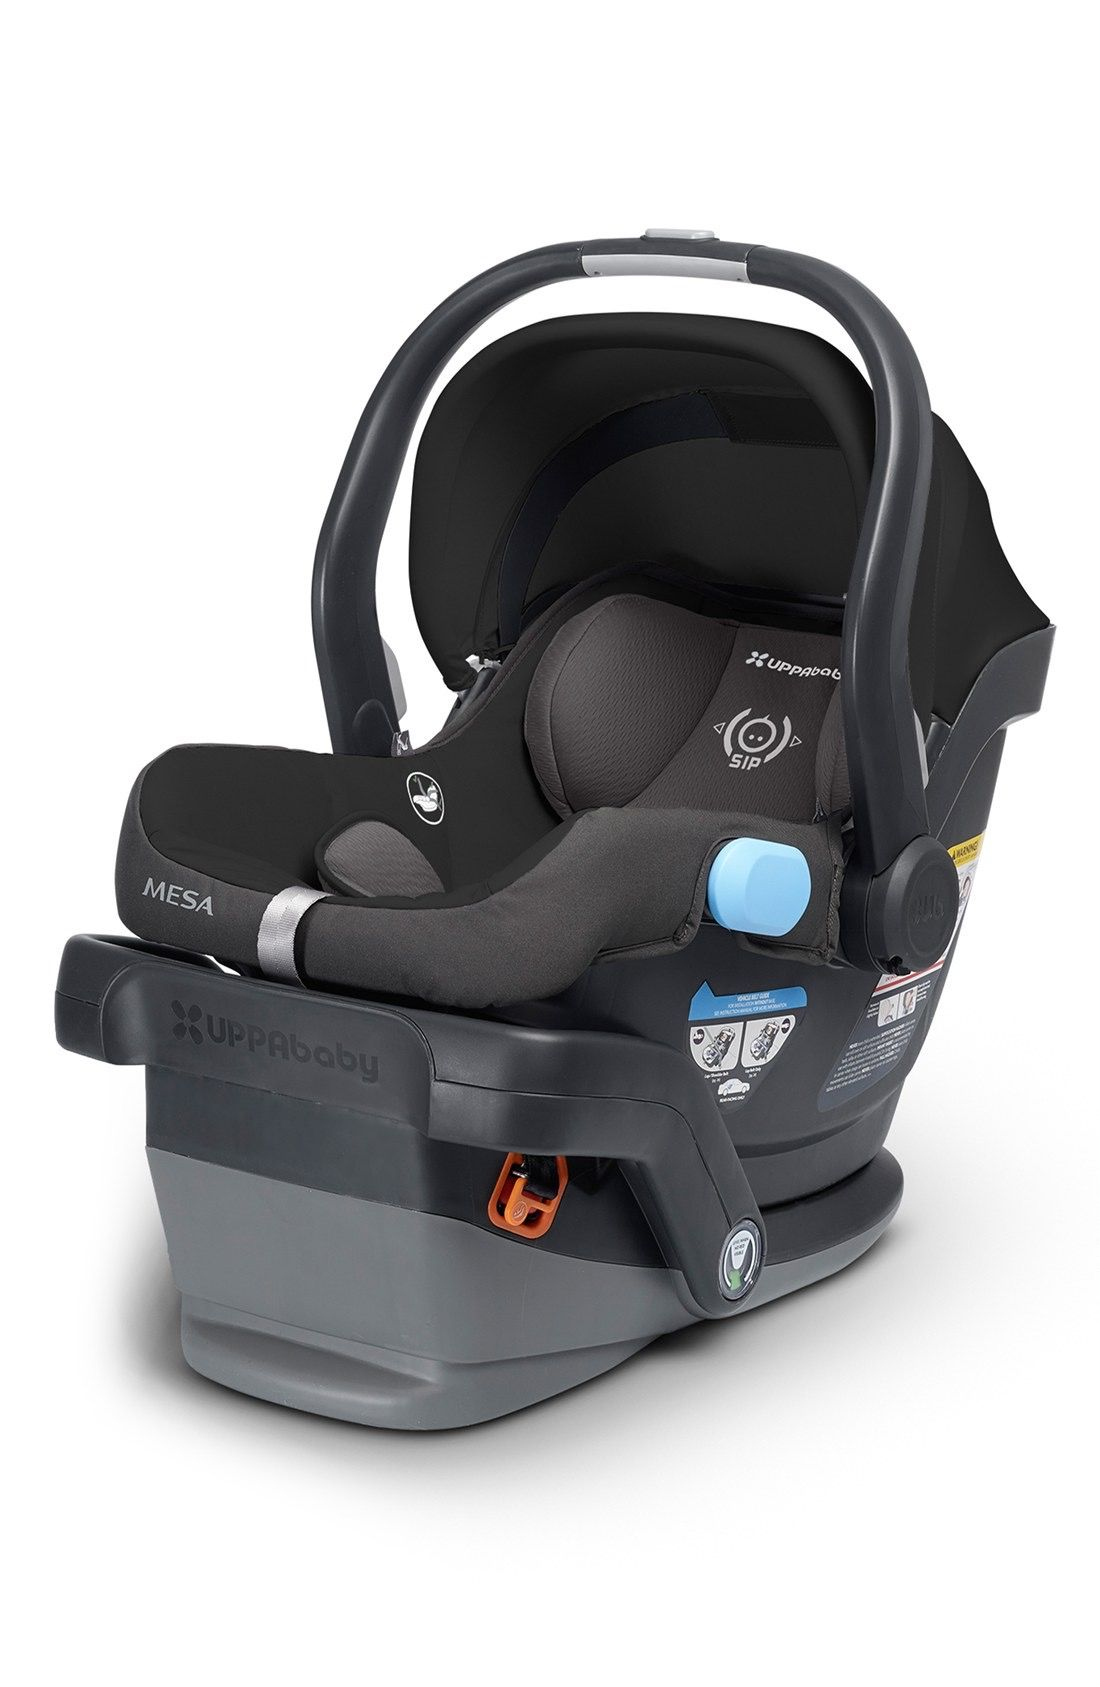 UPPAbaby 'MESA' Car Seat (Baby) available at Nordstrom